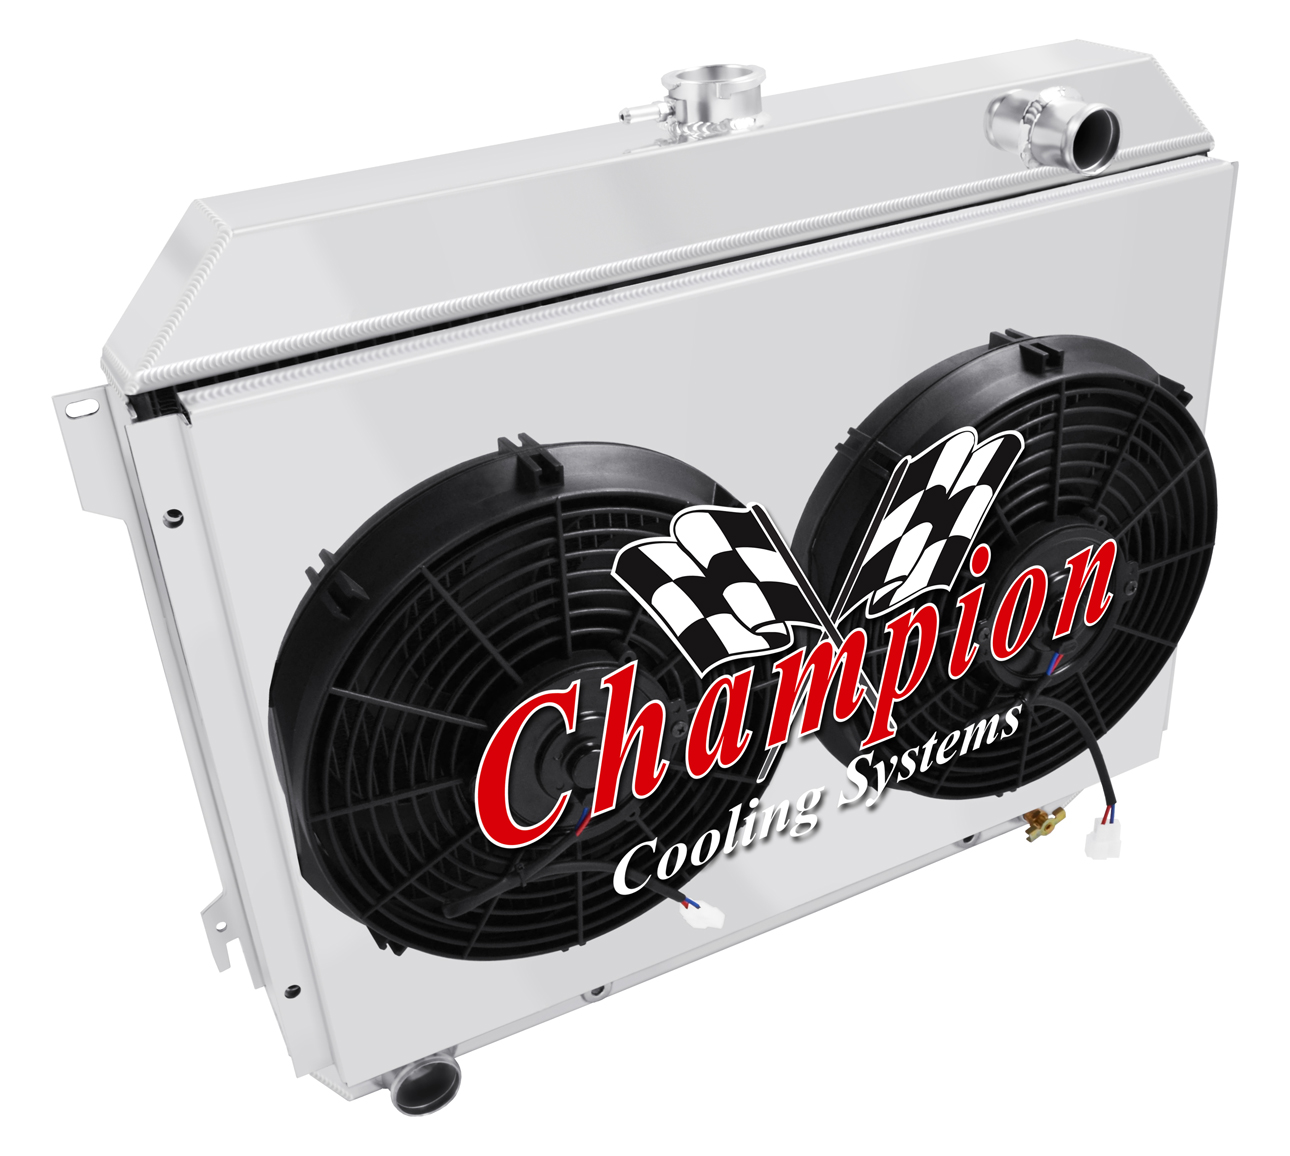 https://www.championcooling.com/photos/Photos%20White/With%20Fans/W-Shroud/375/375FS_champ_angle_white.jpg